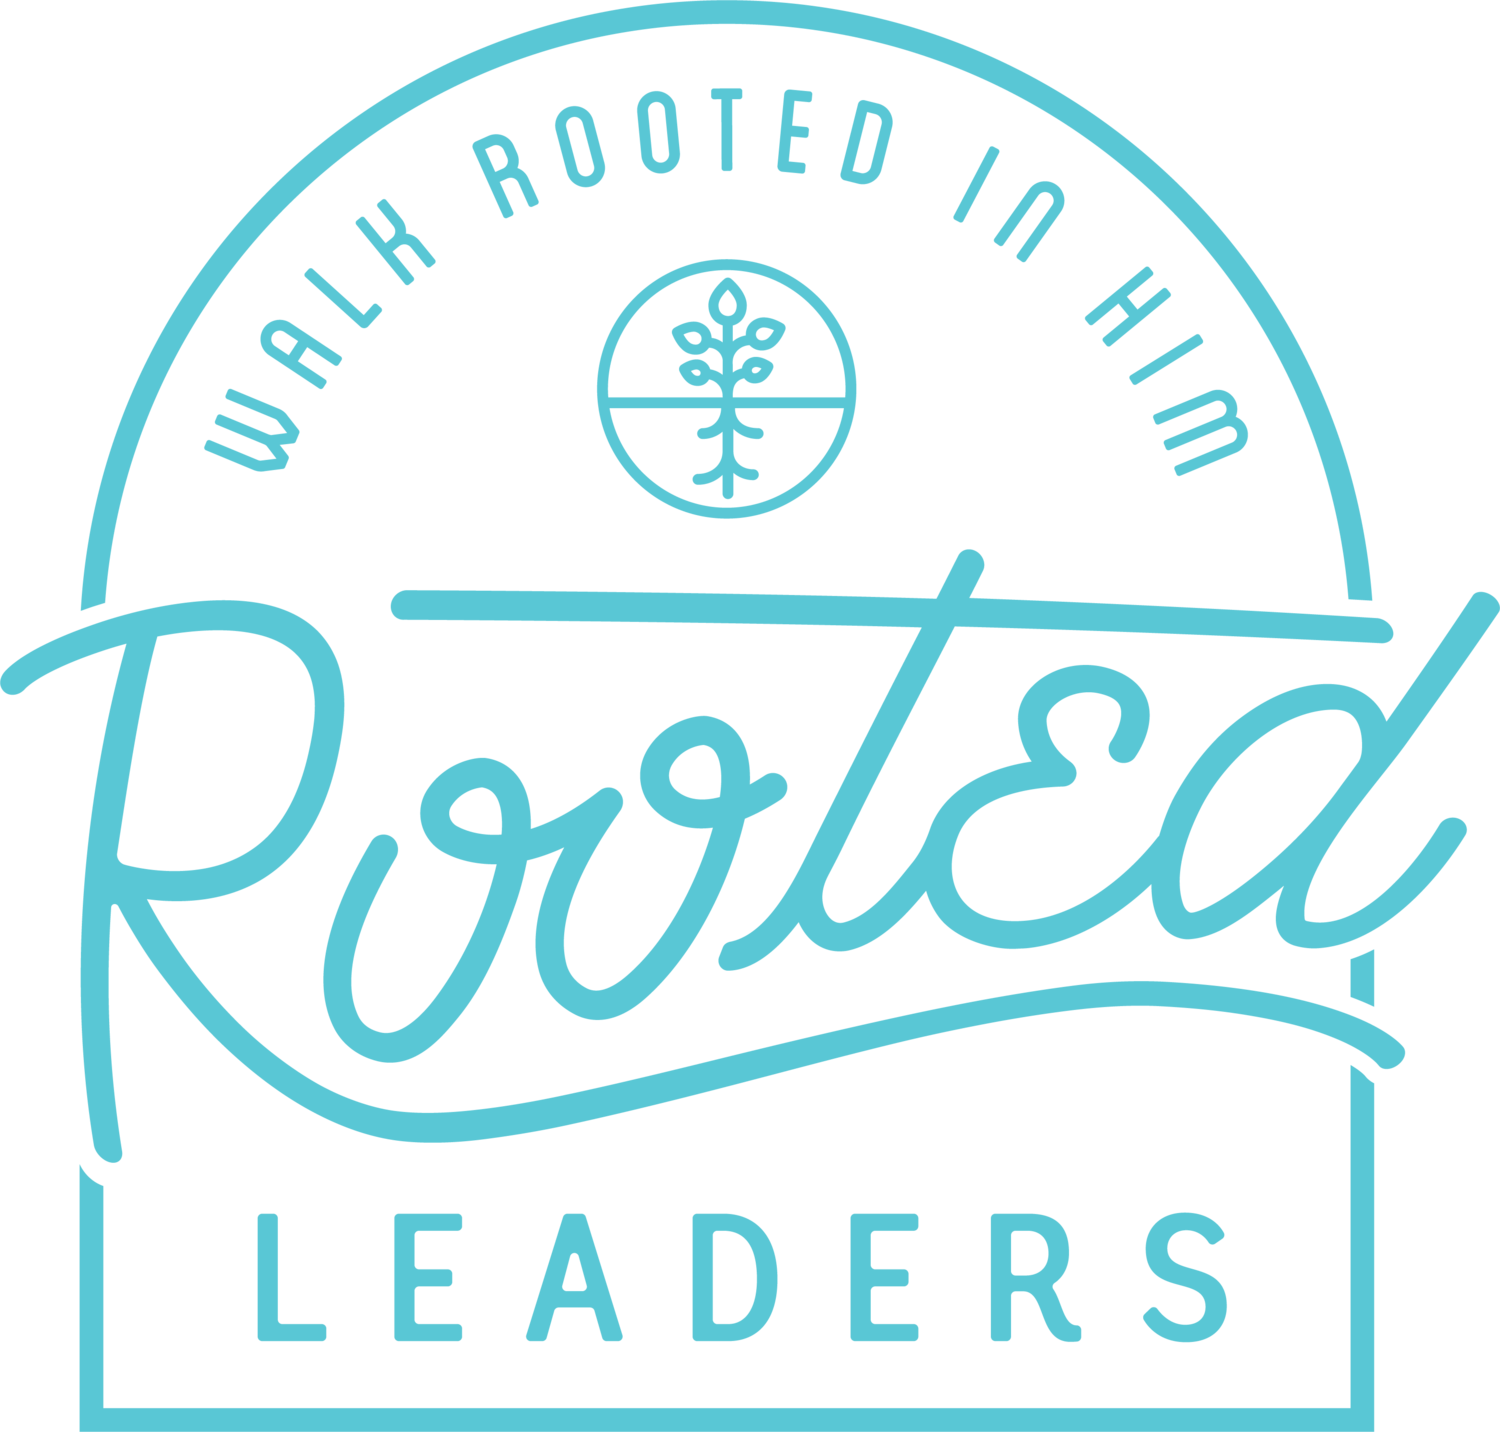 Rooted Leaders